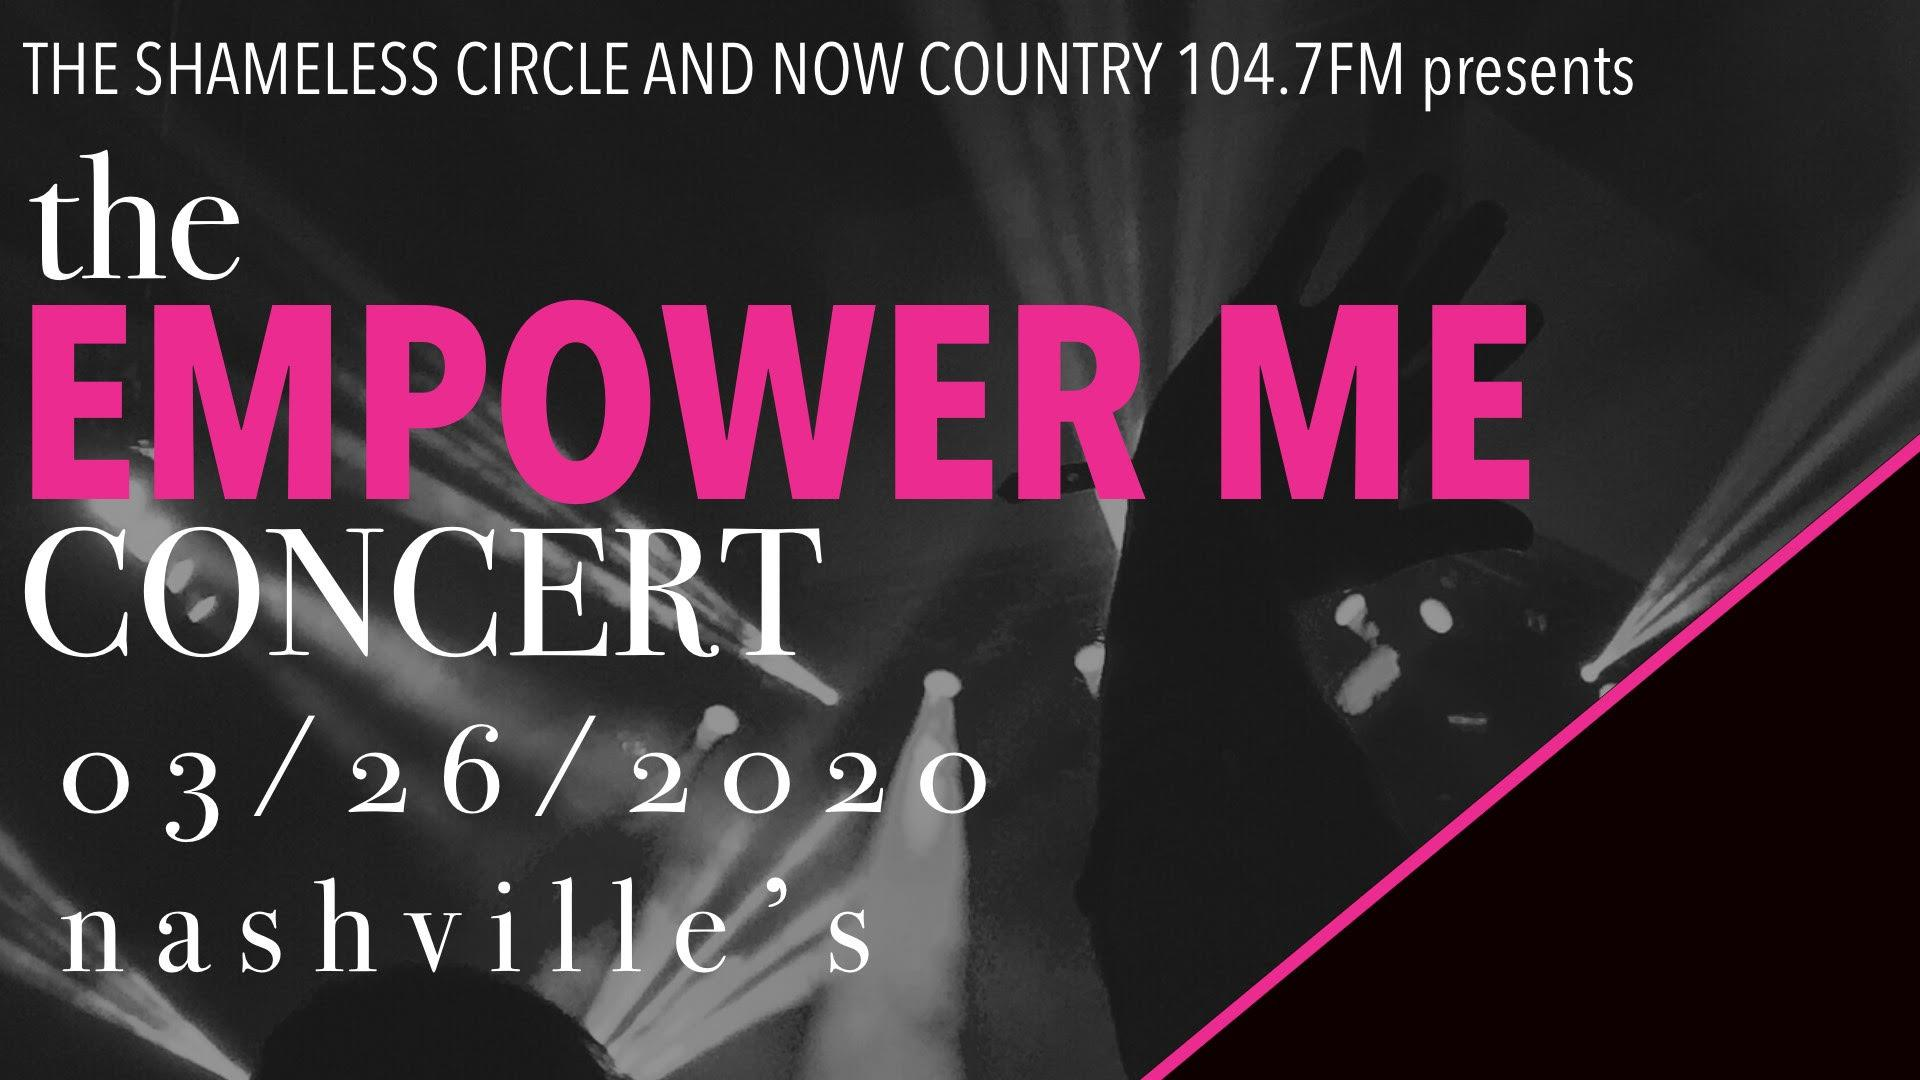 The Empower Me Concert